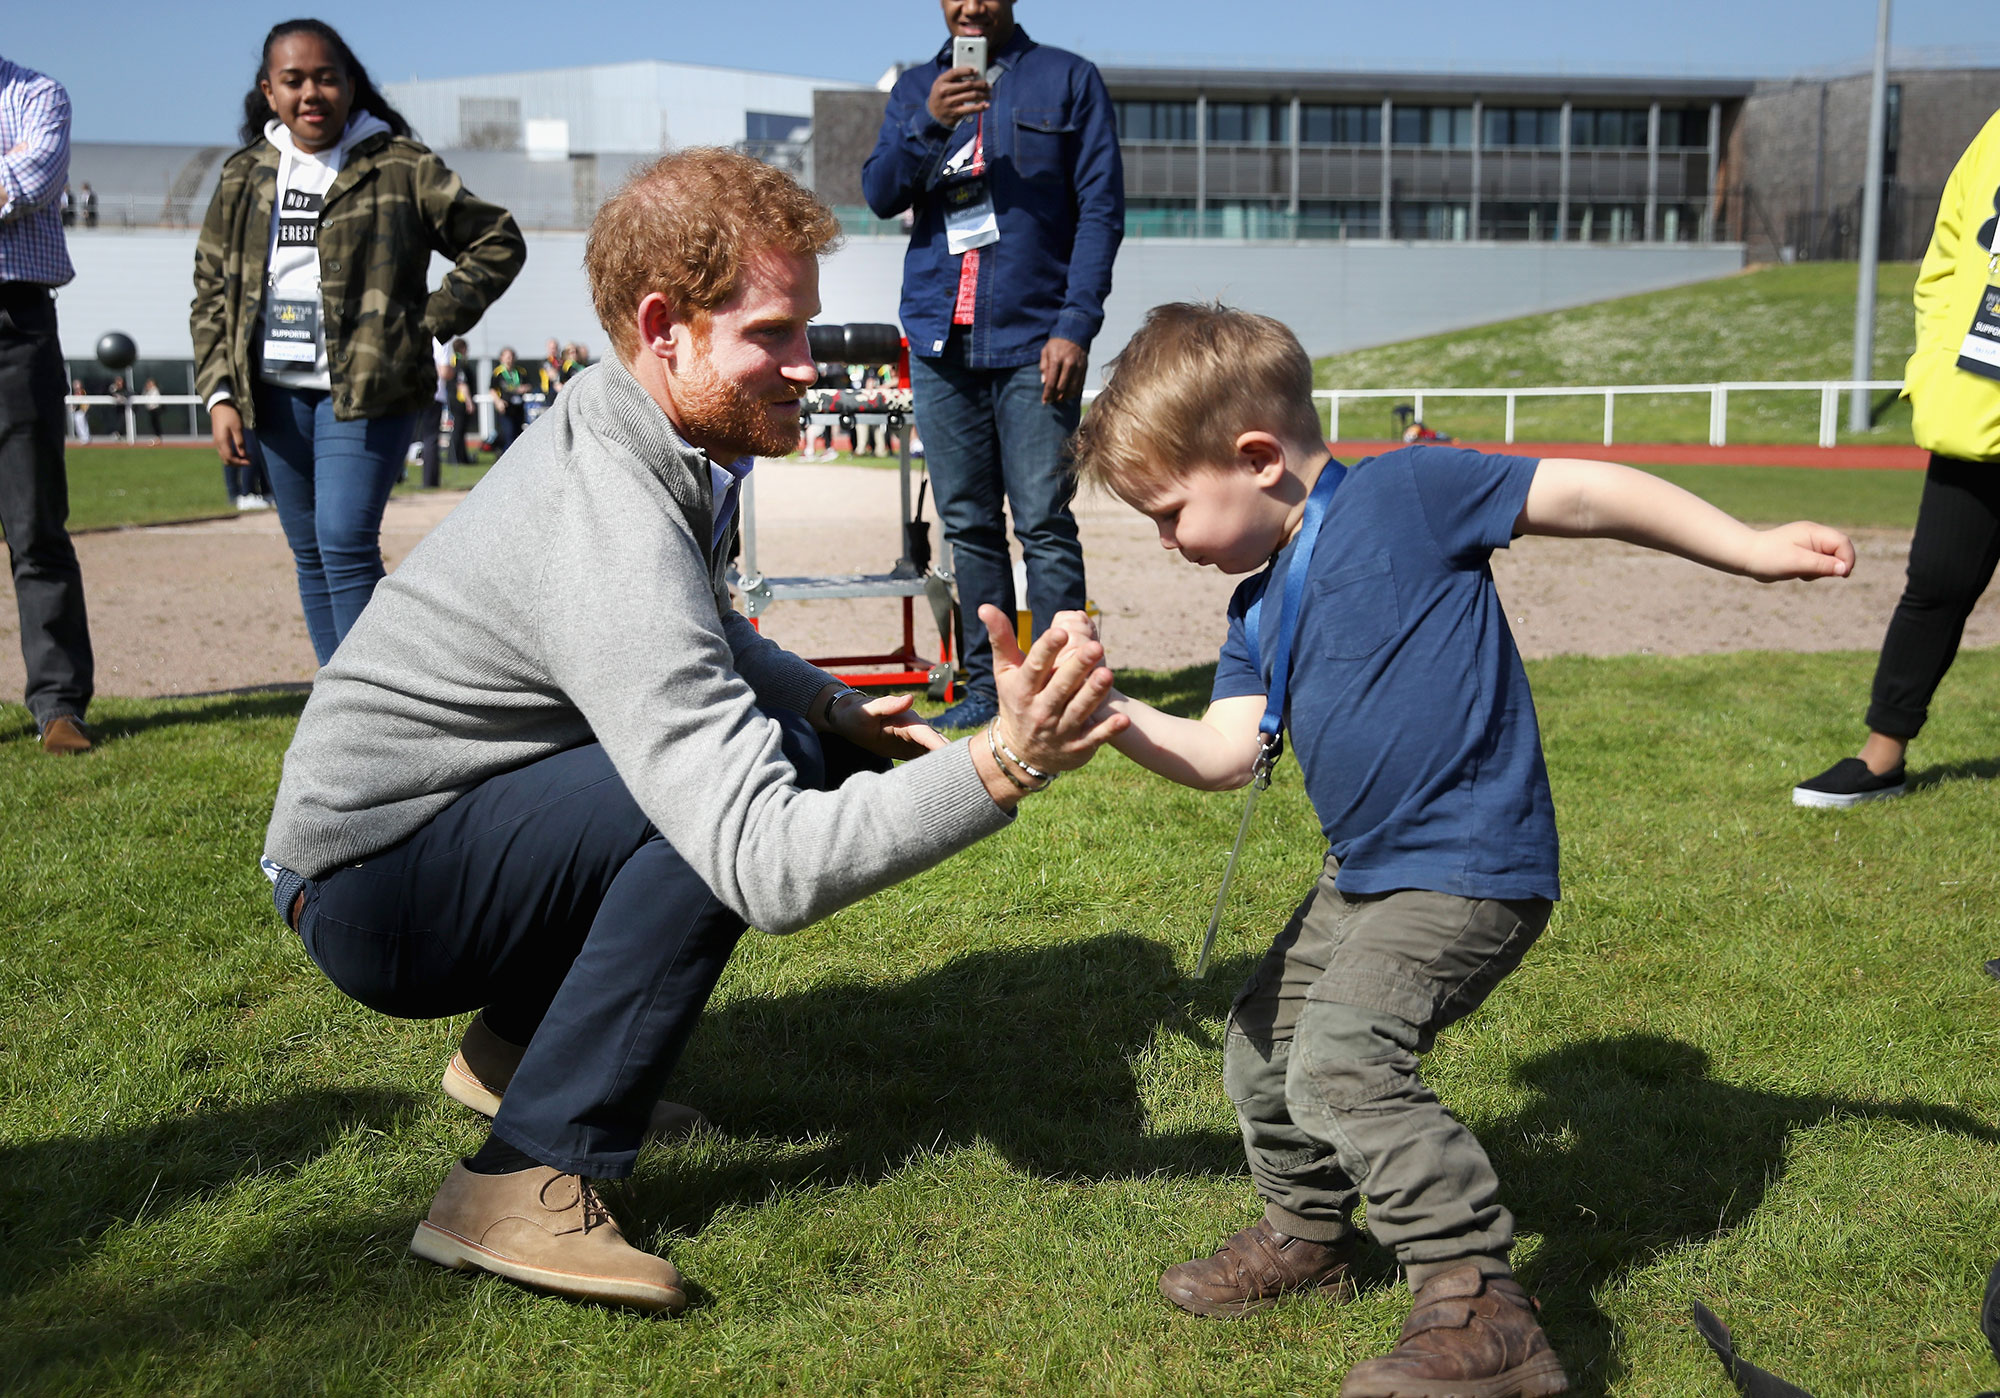 Prince Harry Visits Bath With Invictus Games